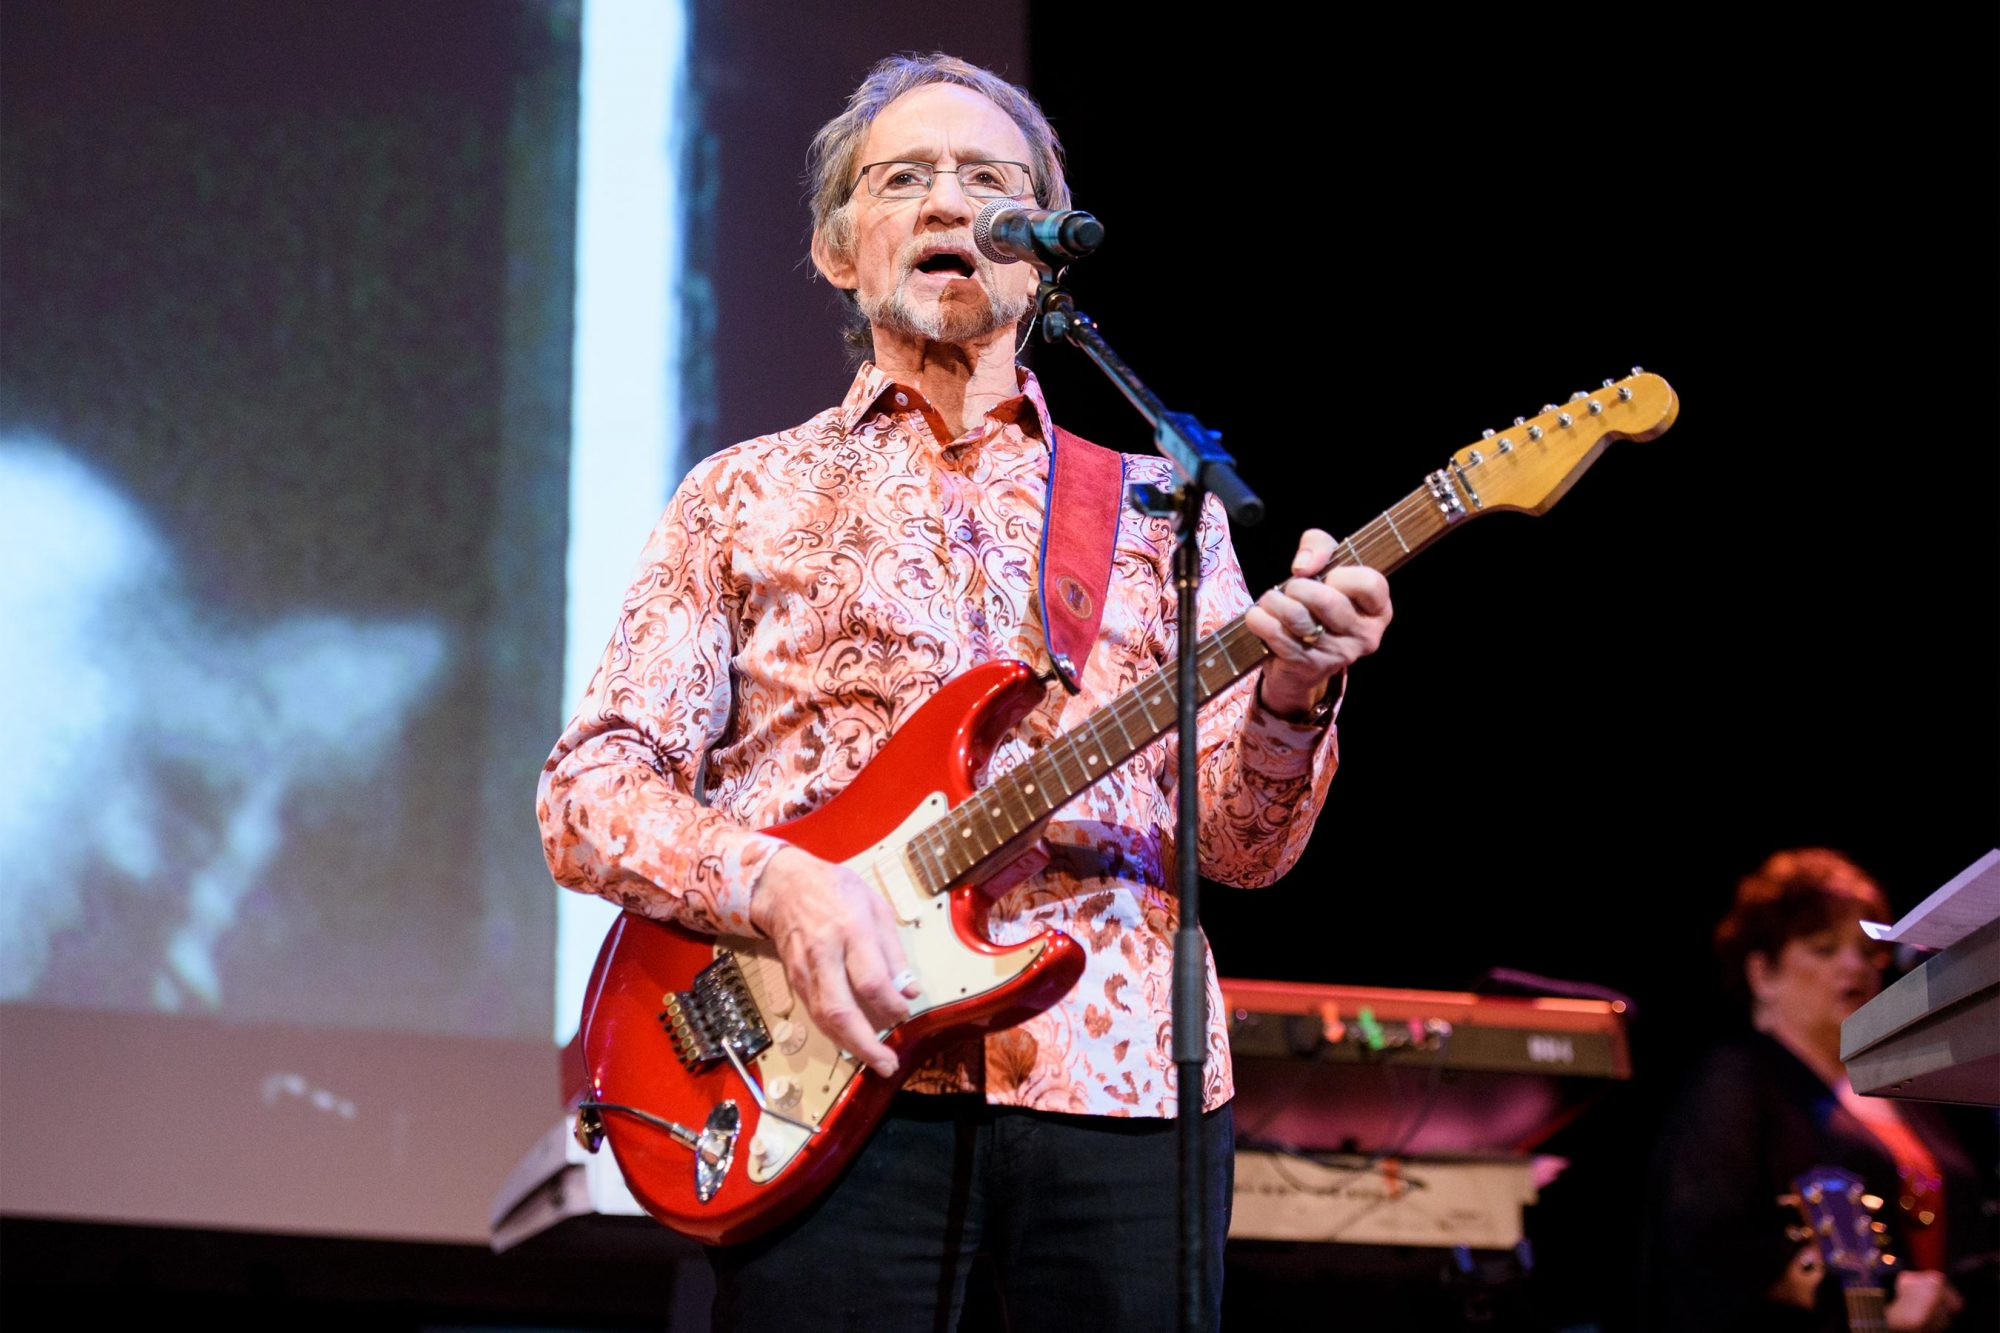 The Monkees Starring Mickey Dolenz And Peter Tork In Concert - New York, New York